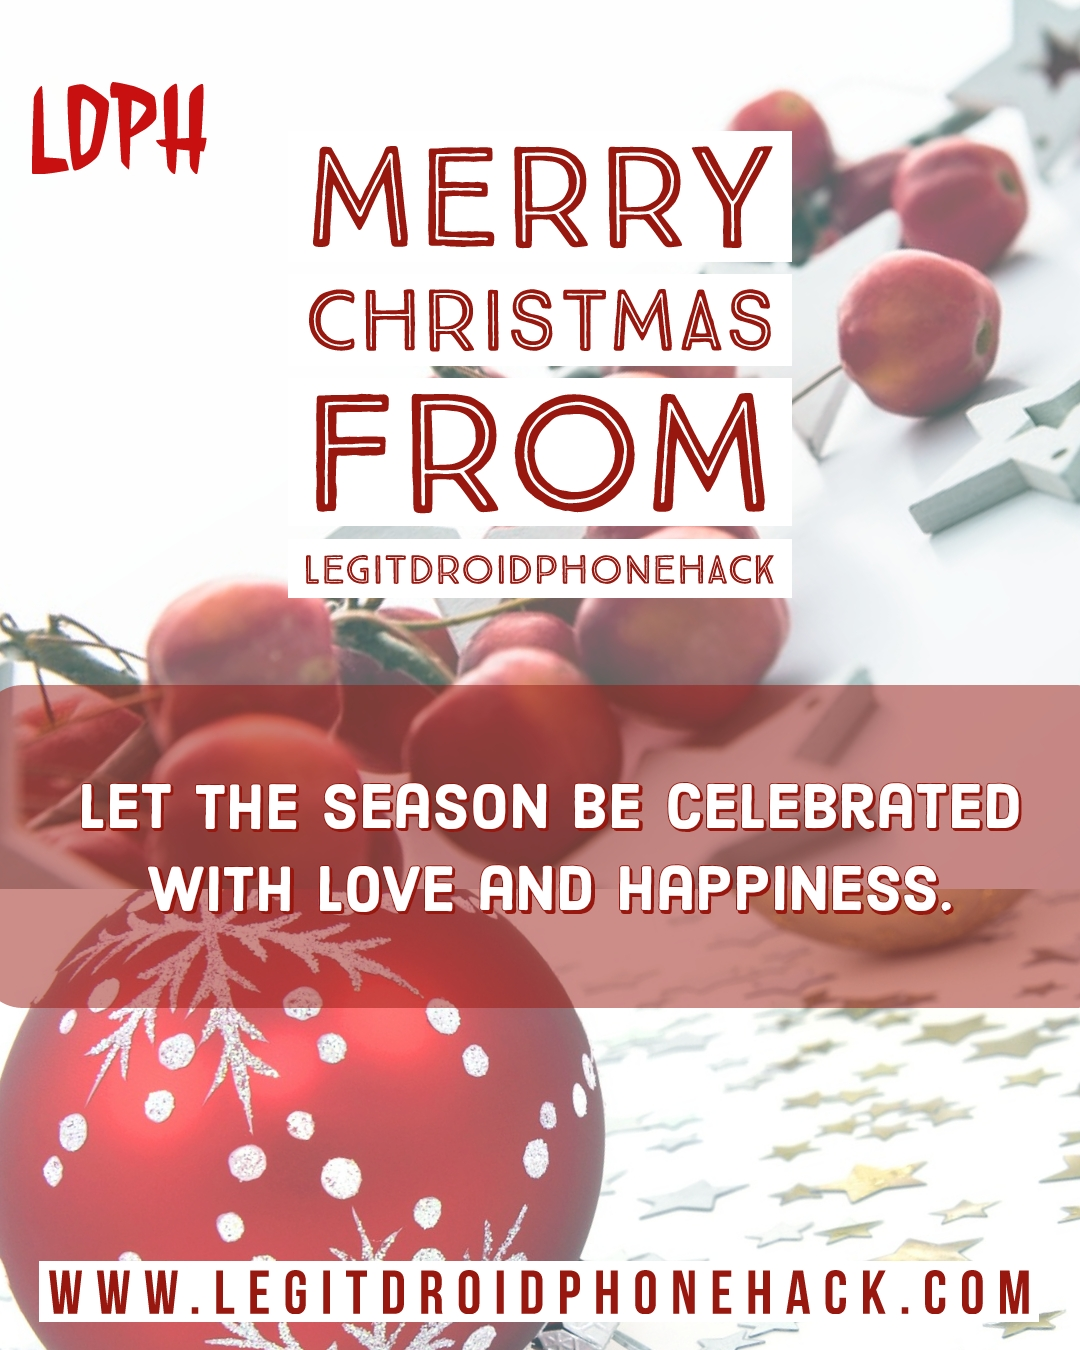 Merry Christmas Wish And Freebies From LDPH